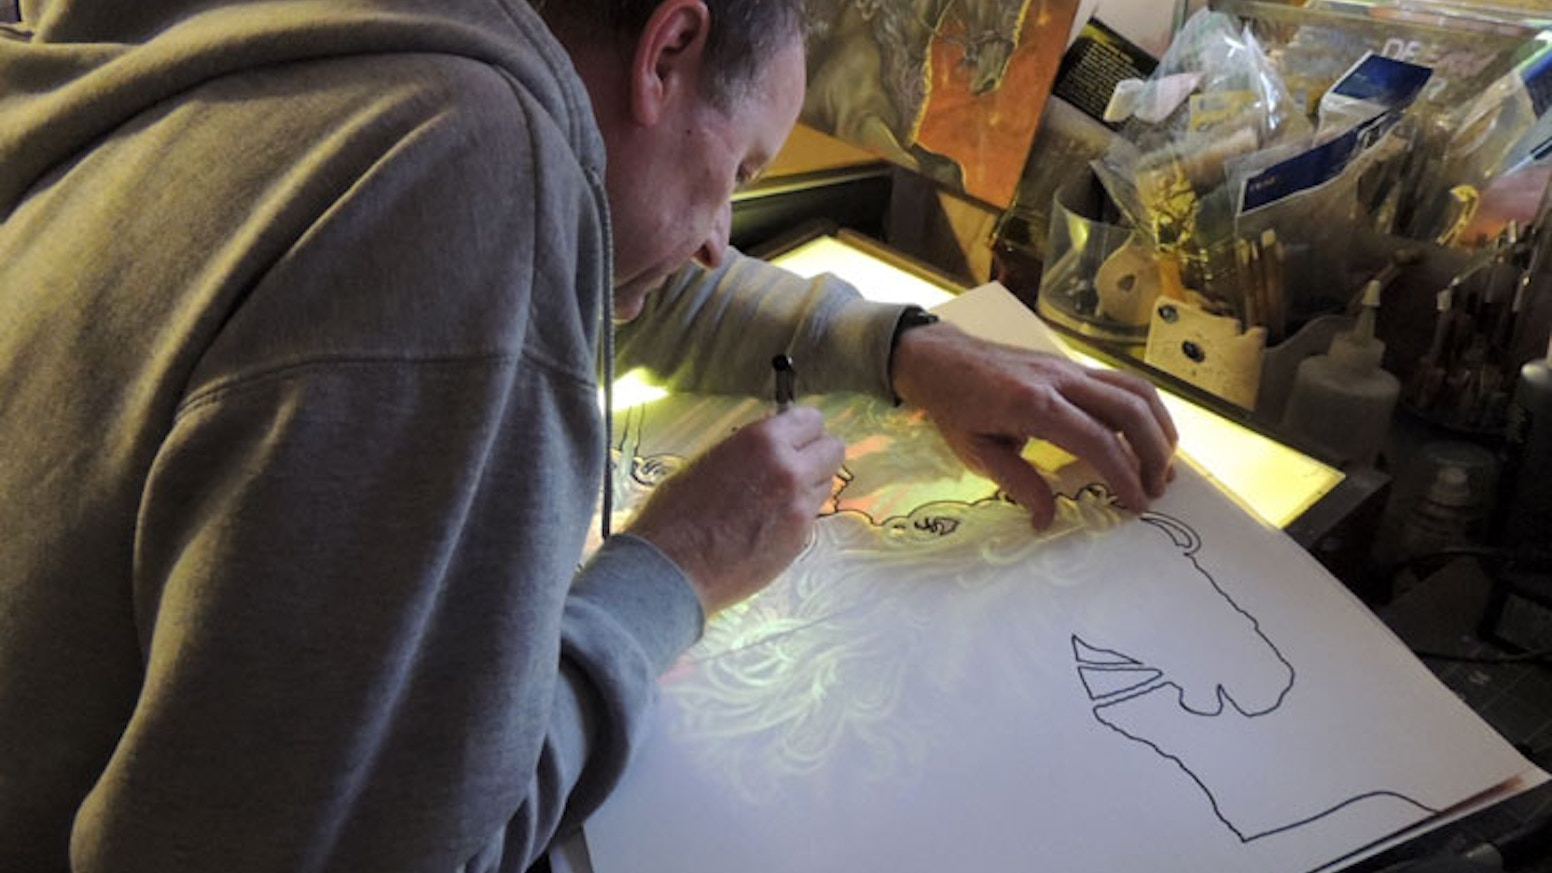 We are creating a beautiful new coloring book of fantasy images in the art nouveau style.